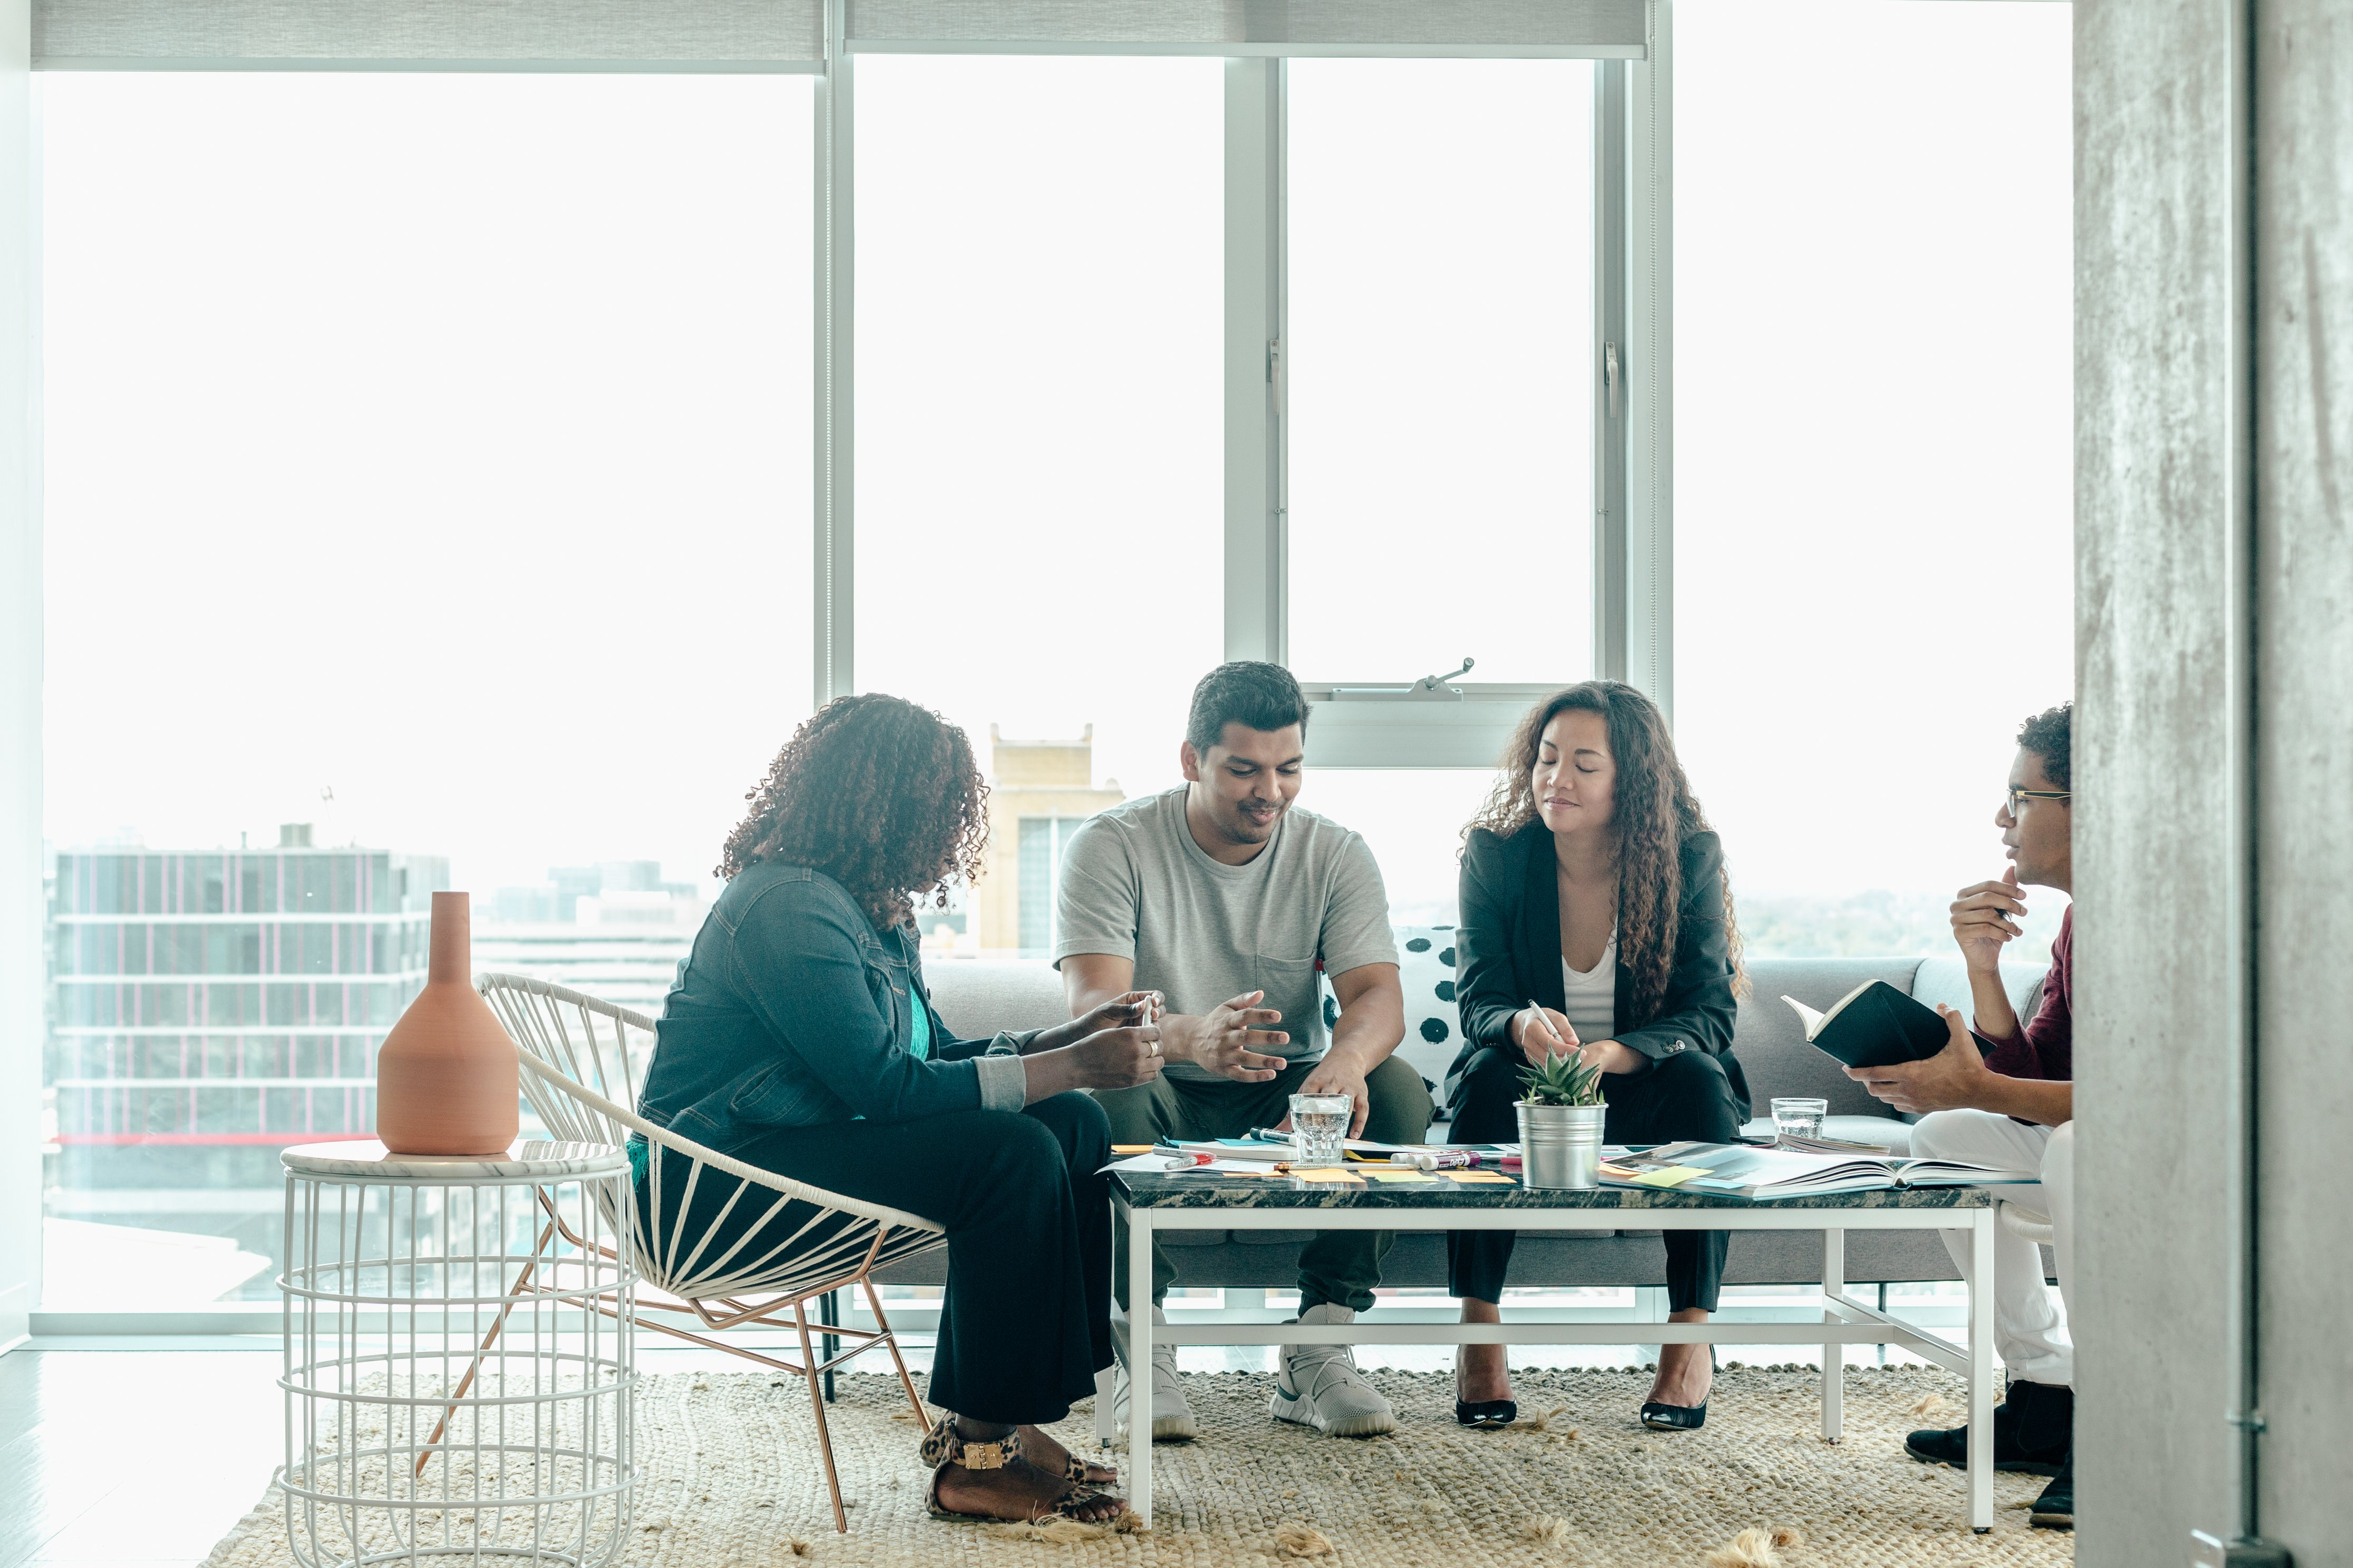 Wondering if employee think time is valuable? You bet! If you want to keep employees creative and sharp, here's why you should budget in some time to ponder.